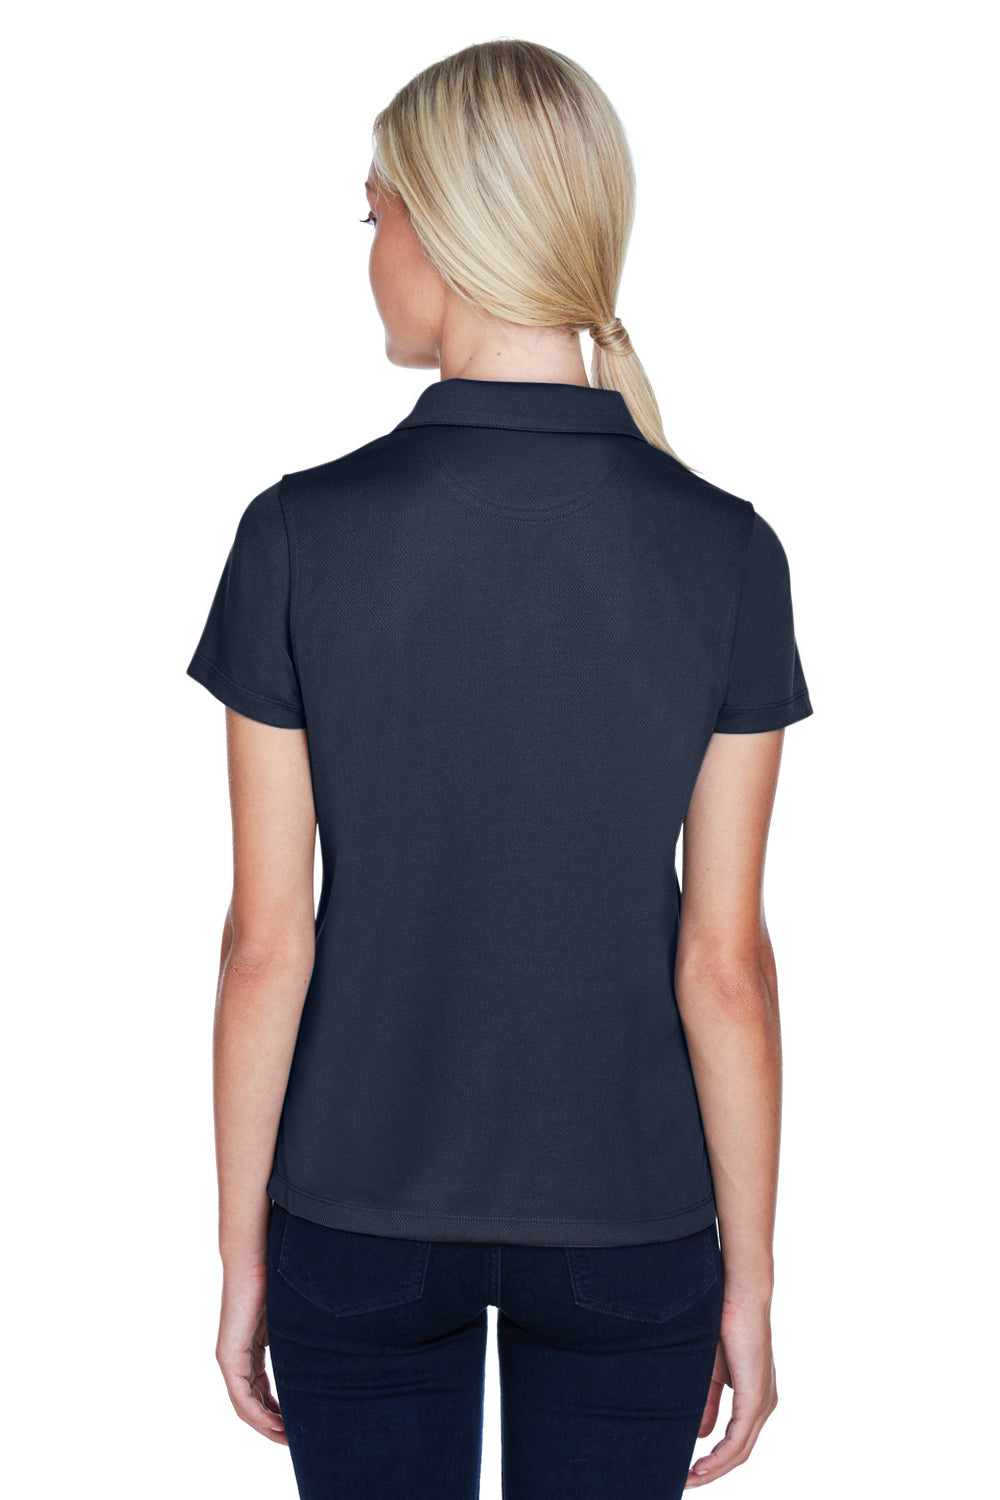 Harriton M353W Womens Double Mesh Moisture Wicking Short Sleeve Polo Shirt Navy Blue Back